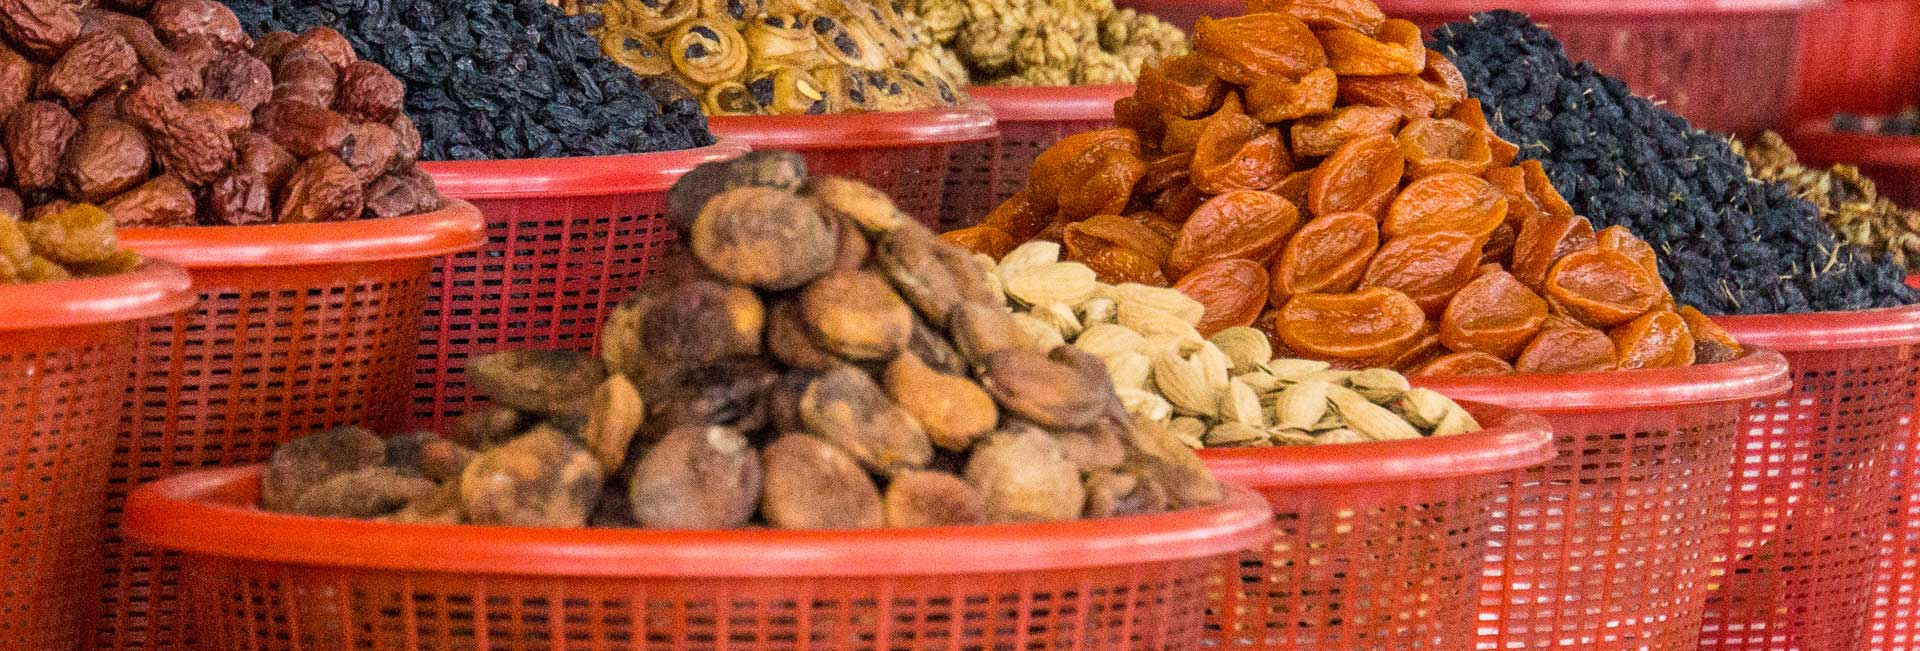 Dried fruit and nuts at a market in Samarkand. Photo credit: Andra Artemova